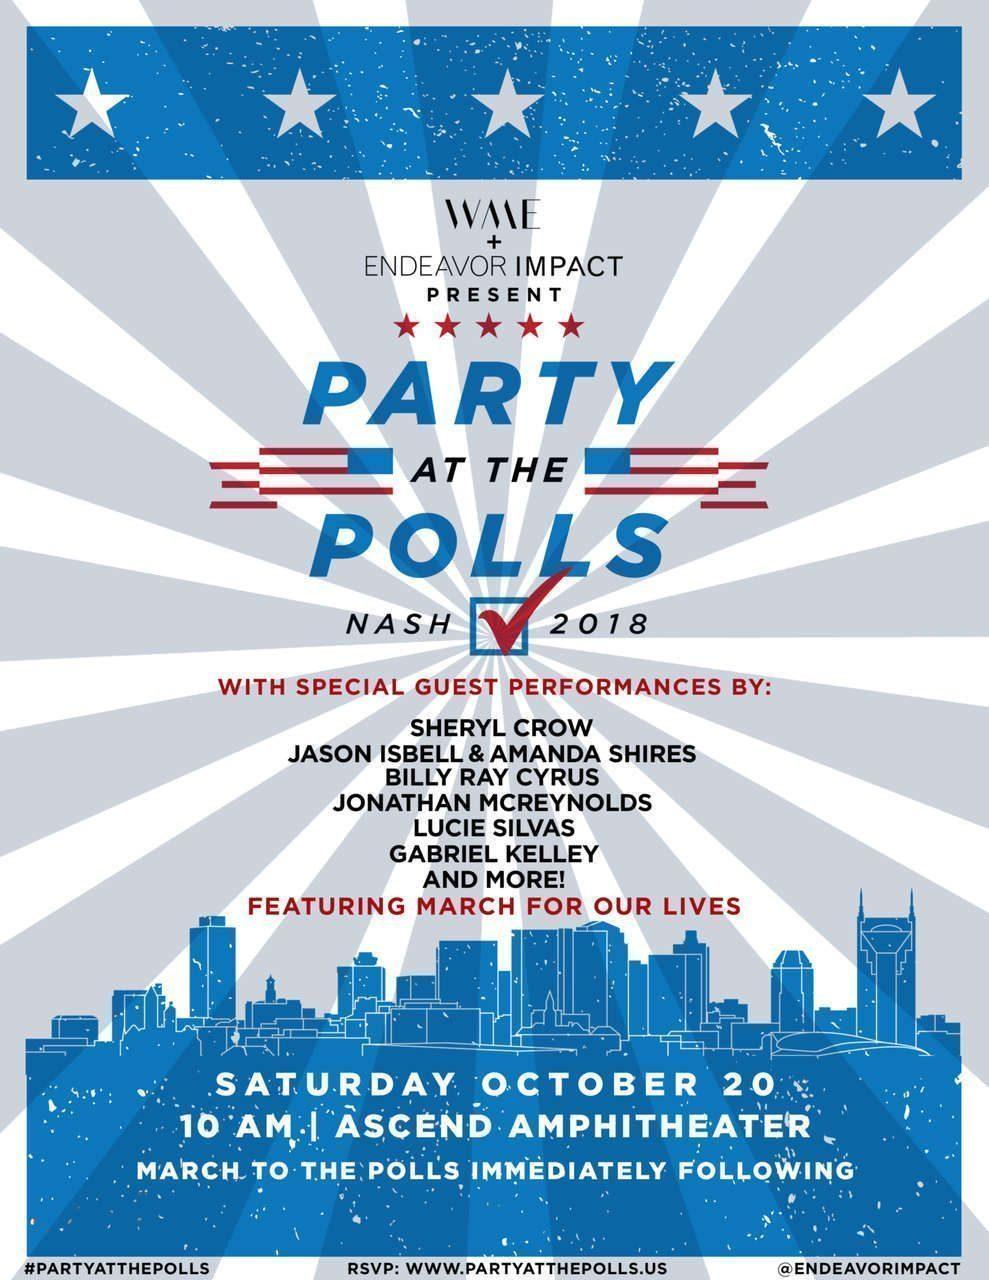 "Billy Ray Cyrus Joins WME's 2018 'Party At The Polls' In Nashville<span class=""wtr-time-wrap after-title""><span class=""wtr-time-number"">3</span> min read</span>"